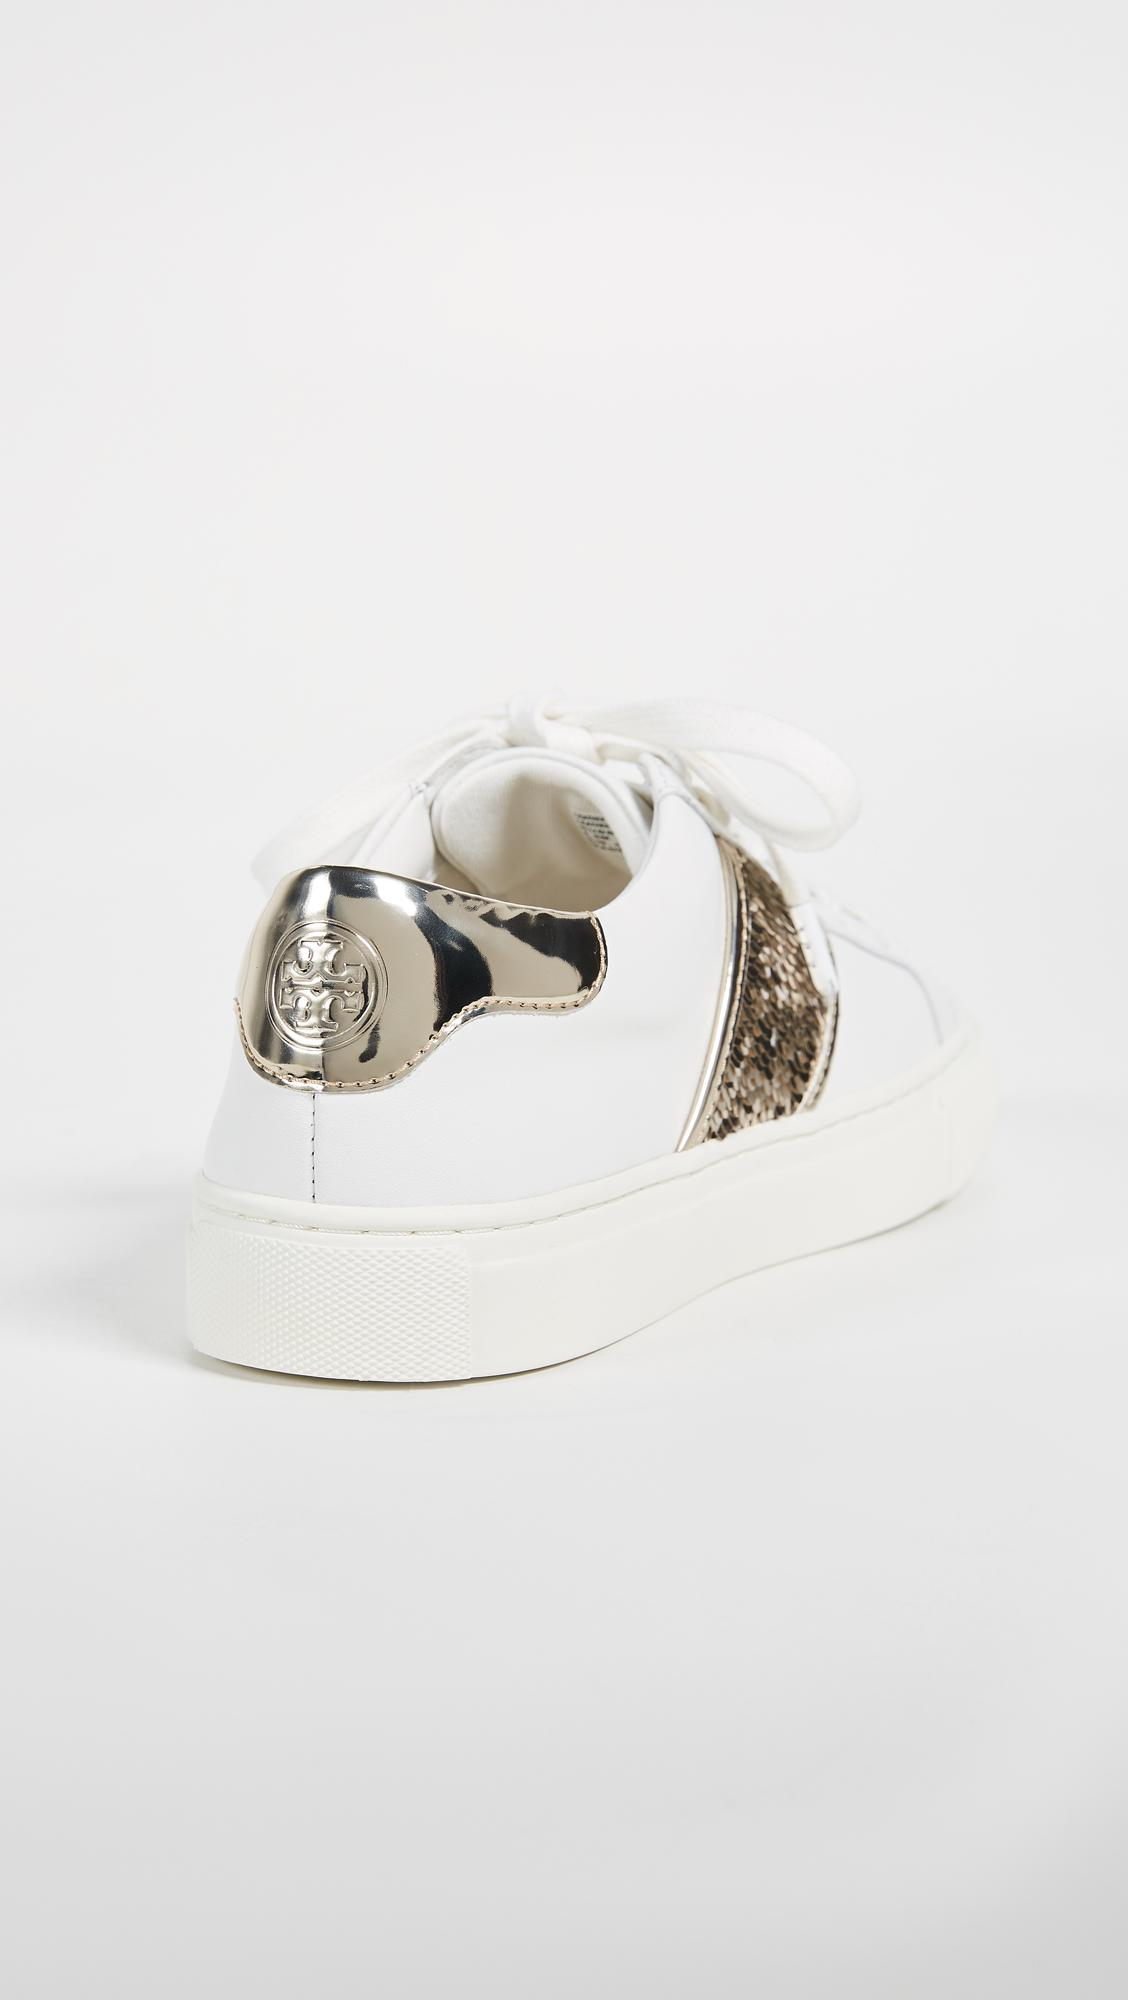 b7de7593c Lyst - Tory Burch Carter Lace Up Sneakers in White